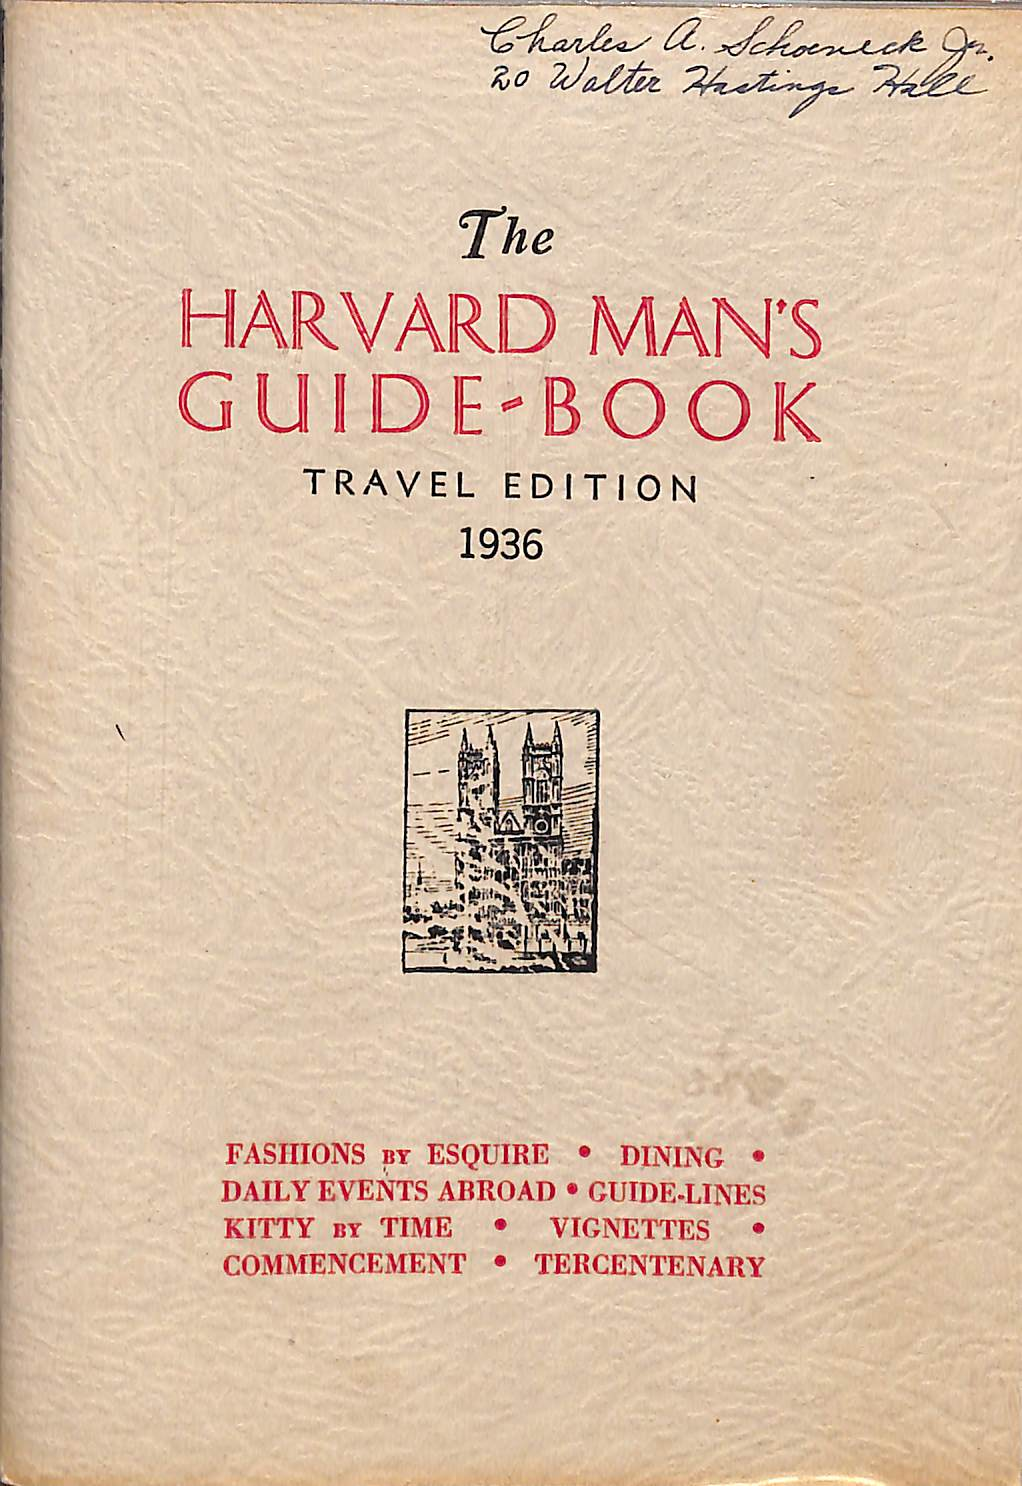 The Harvard Man's Guide-Book Travel Edition 1936